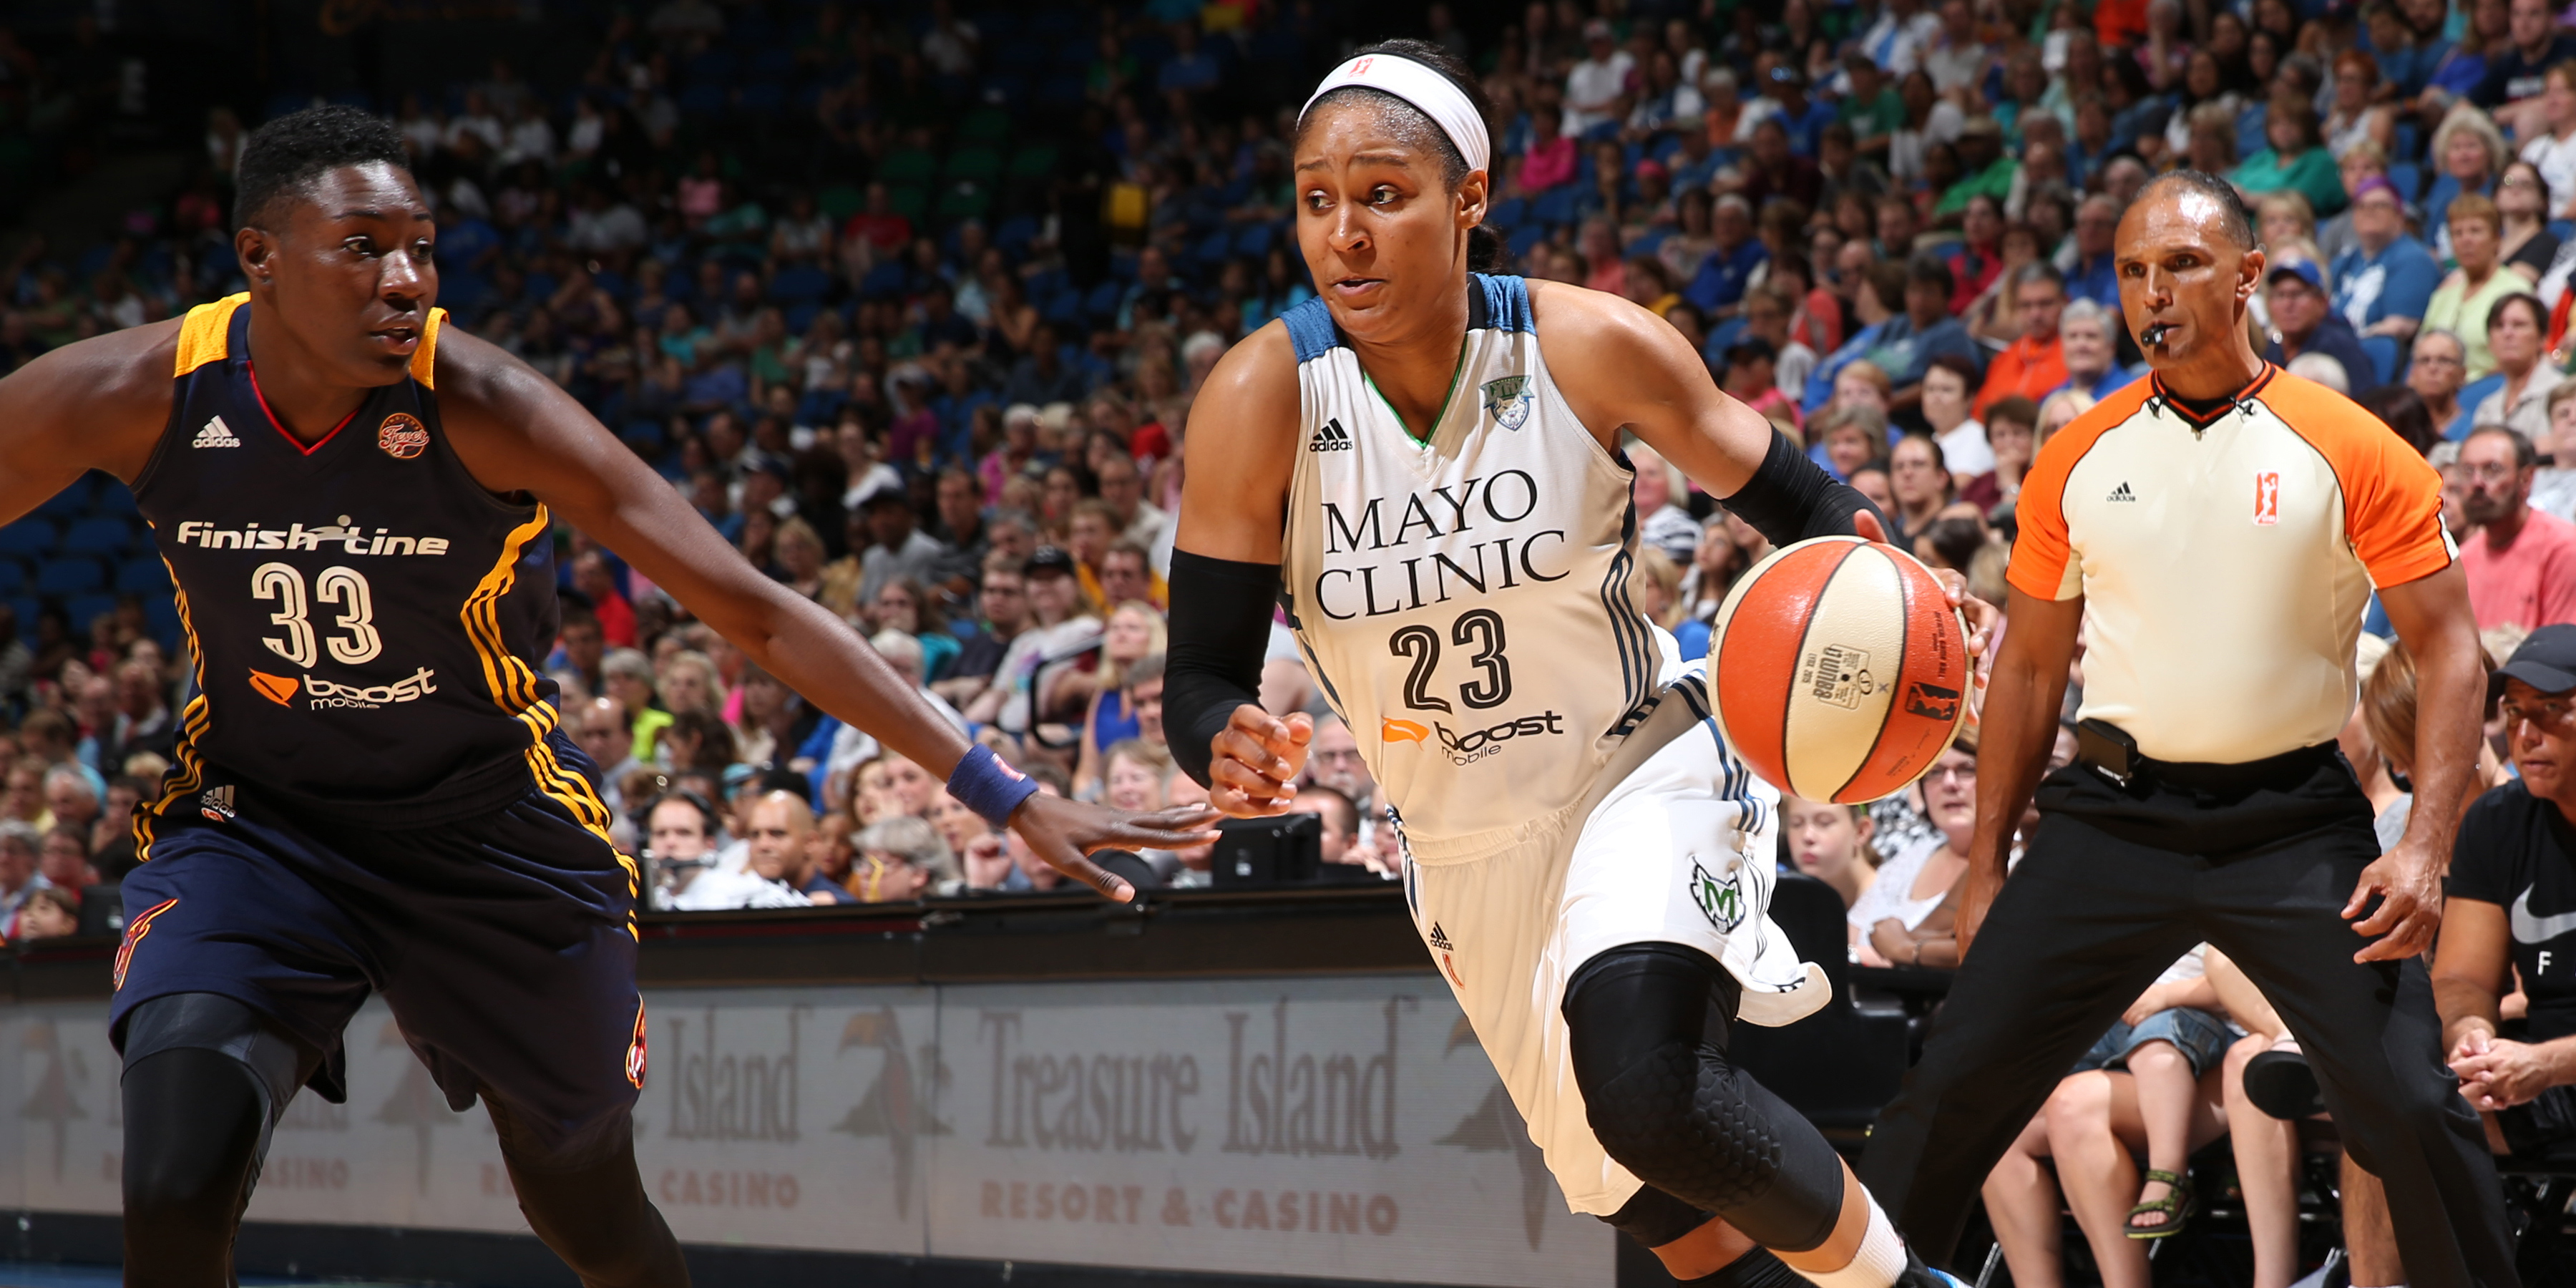 Despite leaving the game near the end of the third quarter due to an incidental elbow to the nose from teammate Sylvia Fowles, Lynx forward Maya Moore still managed to have a good night, finishing with 11 points on 4-of-8 (50  percent) shooting in 23 minutes of play.